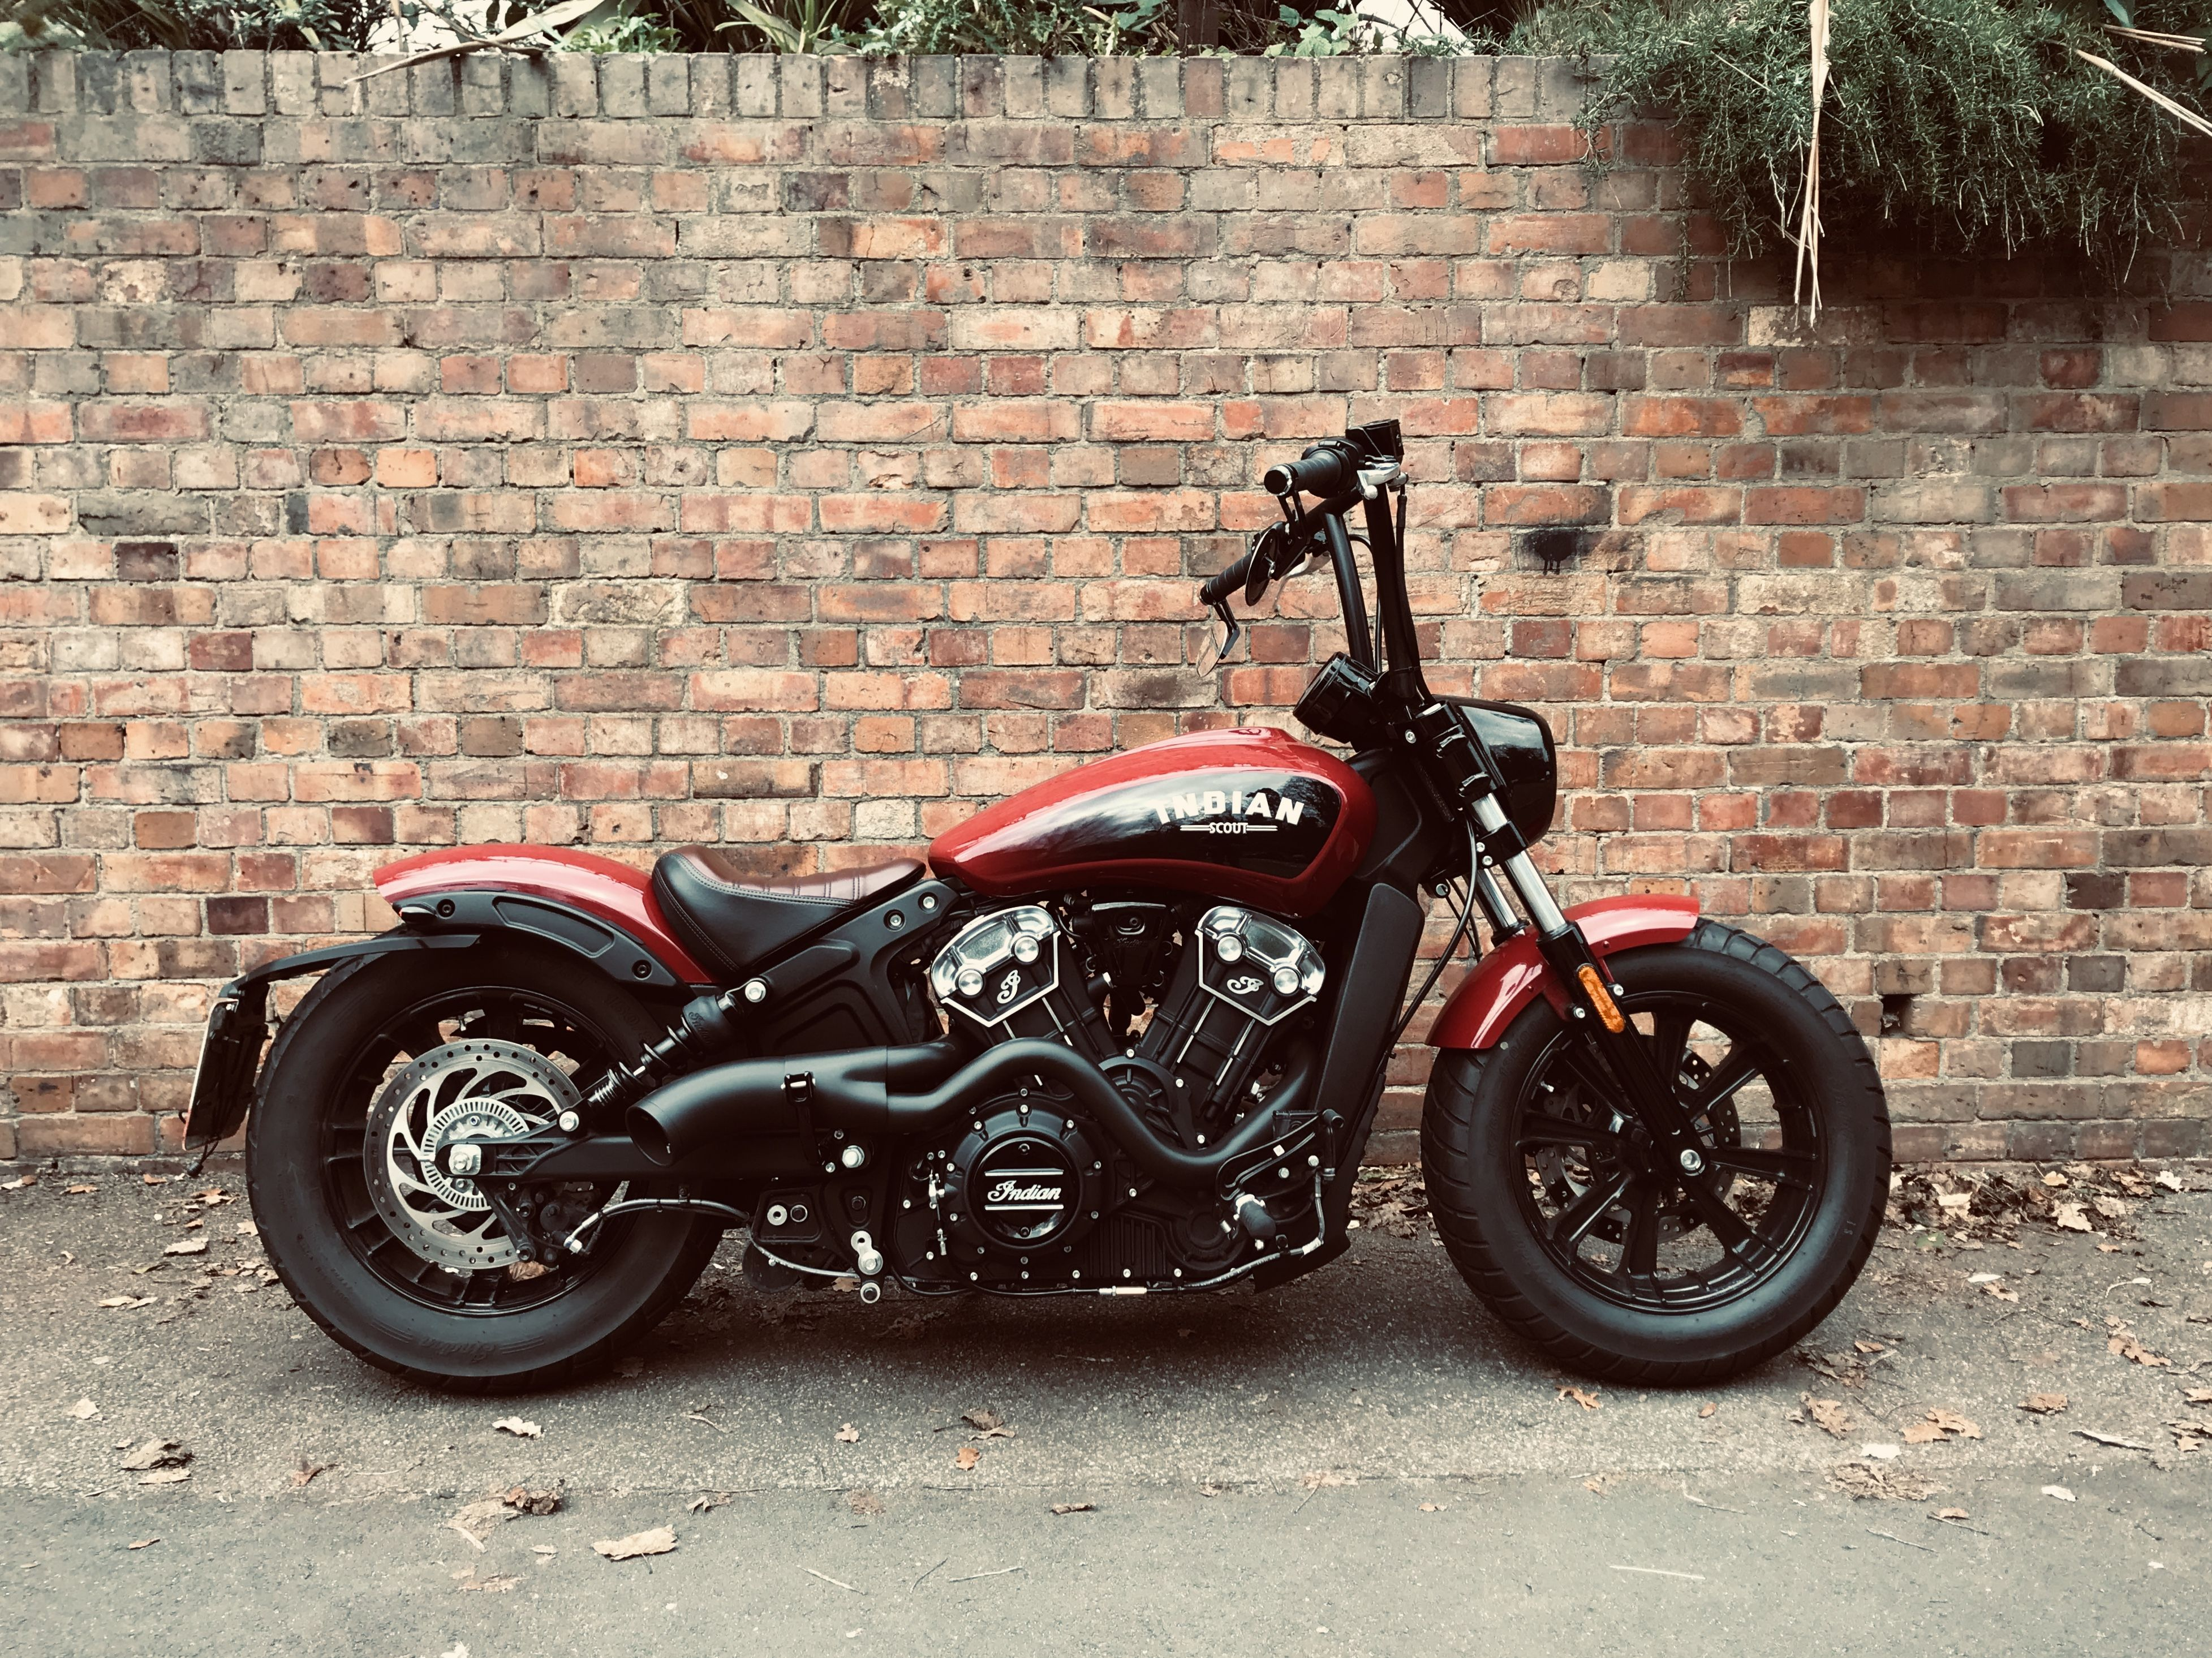 Pin On Custom Indian Scout Motorcycle Builds [ 2930 x 3910 Pixel ]